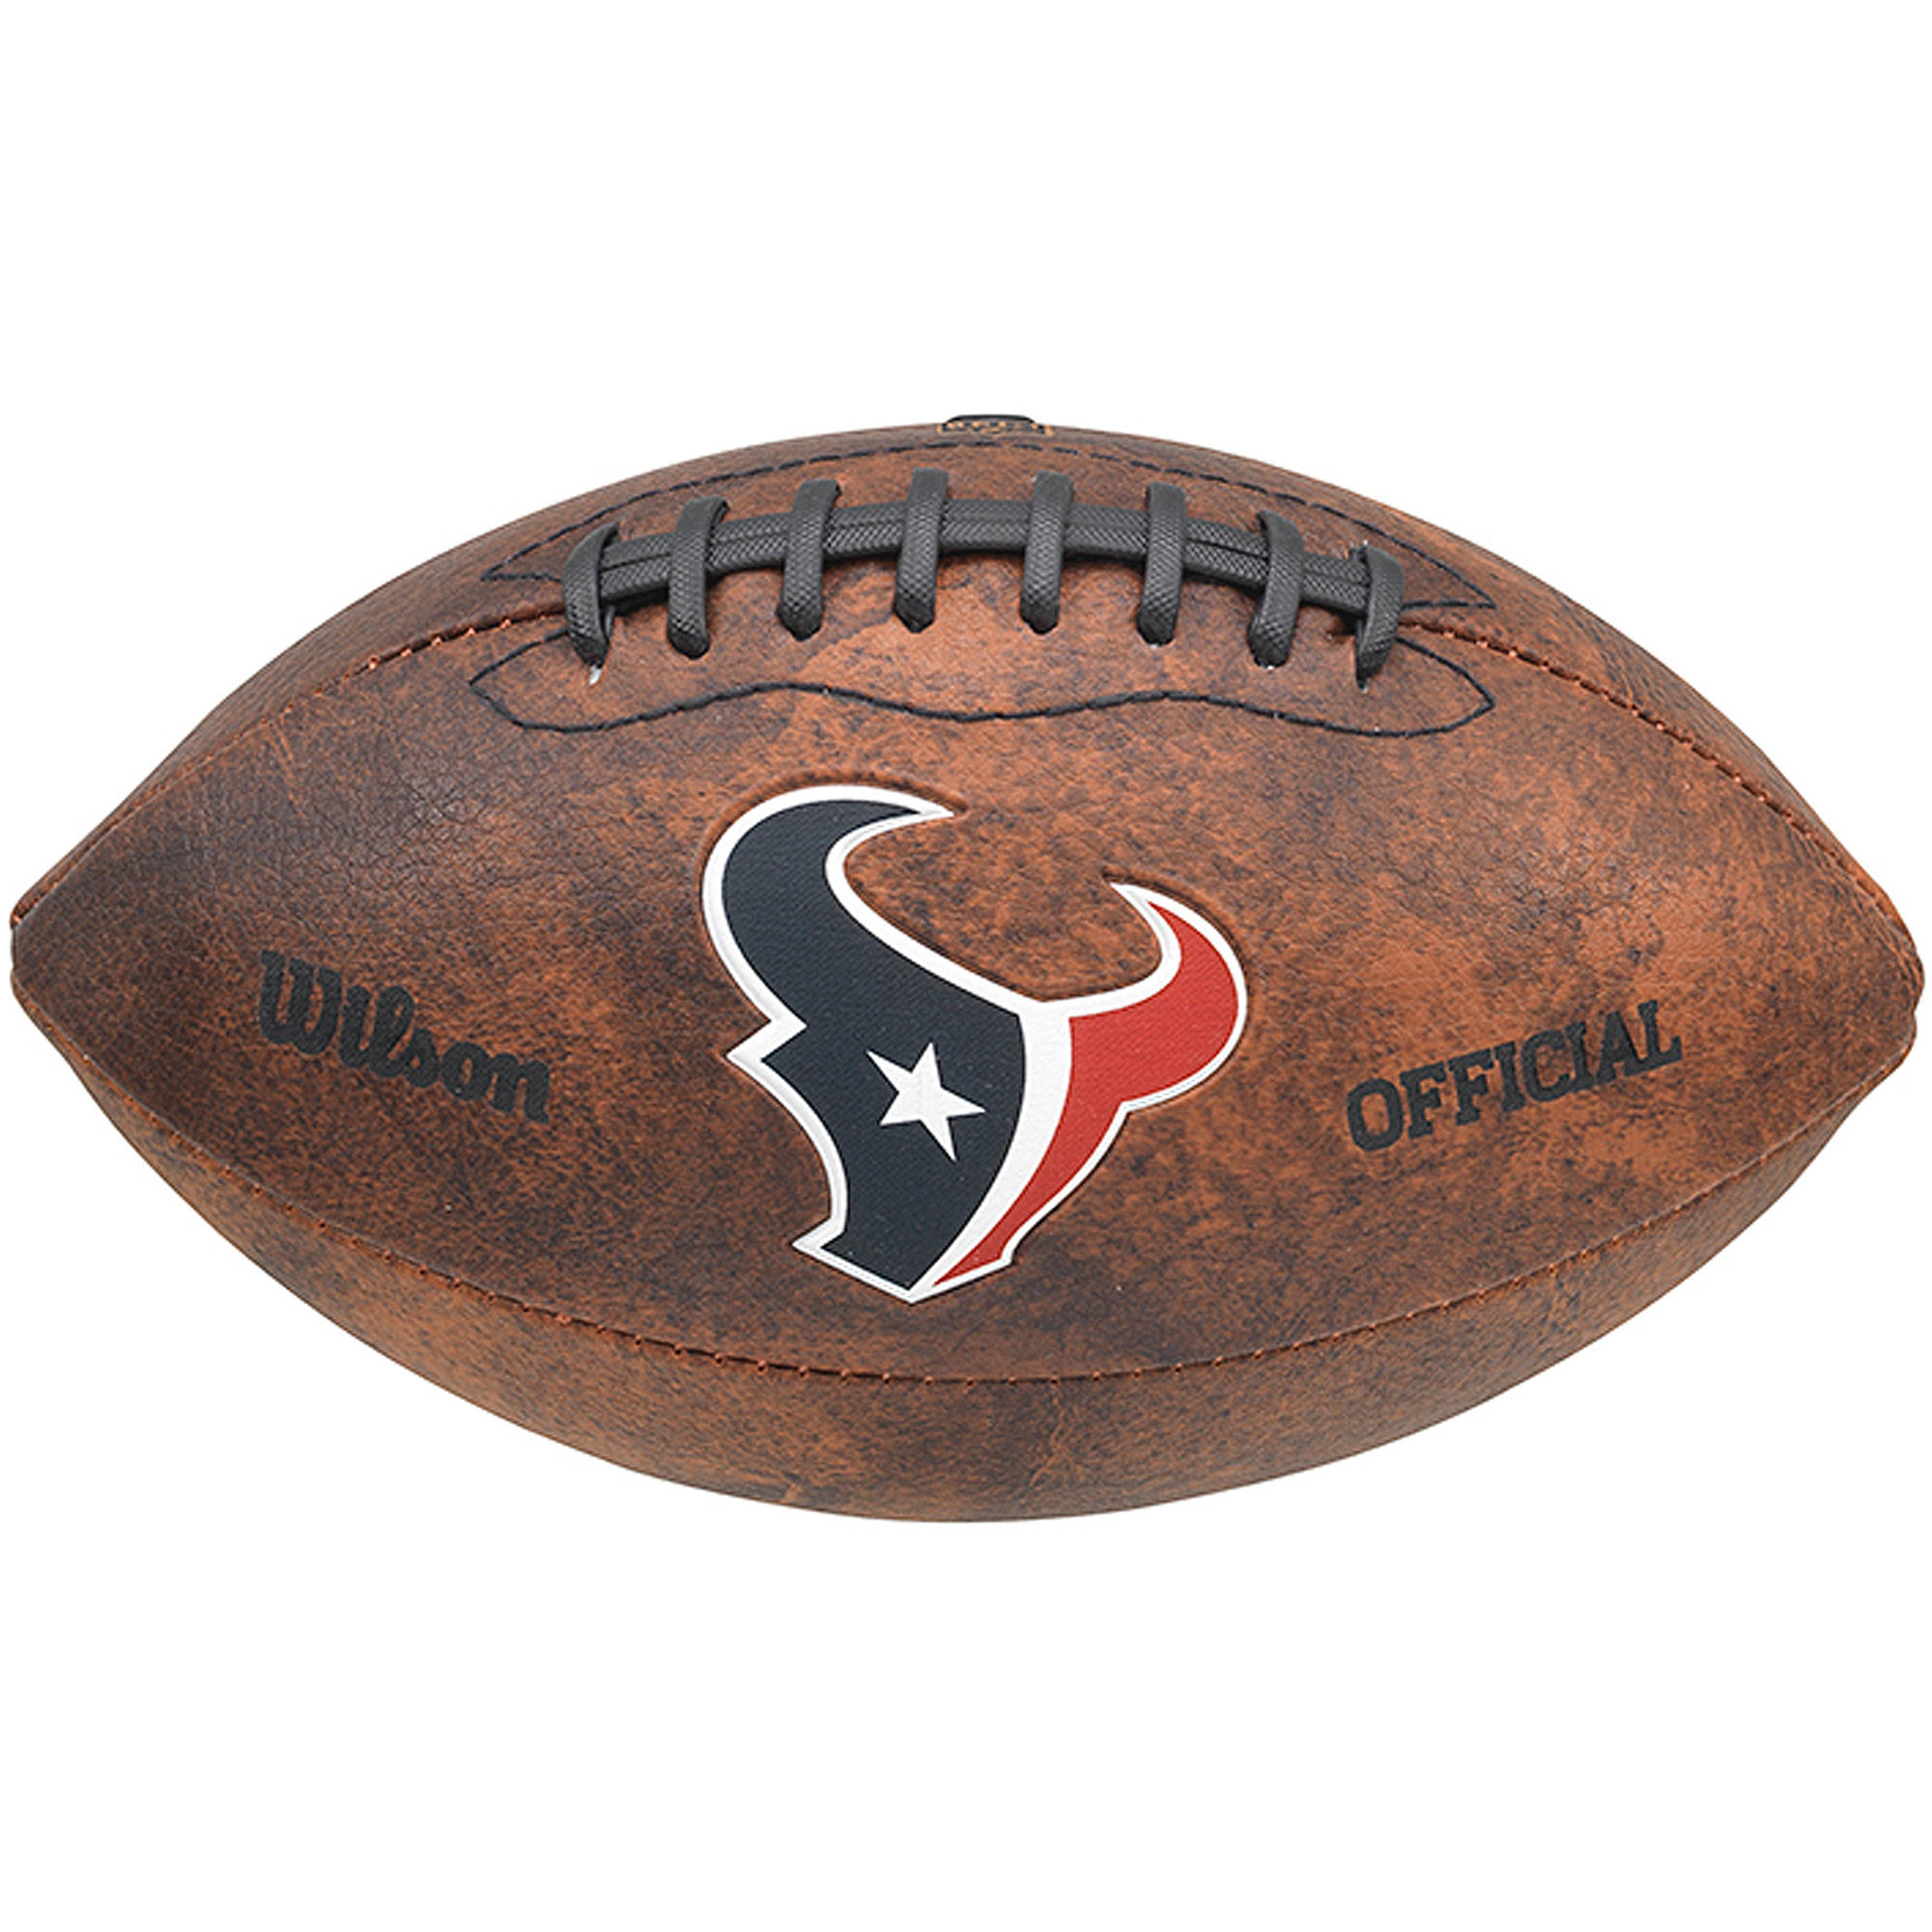 """Wilson NFL 9"""" Color Throwback Football, Houston Texans by Gulf Coast Sales"""